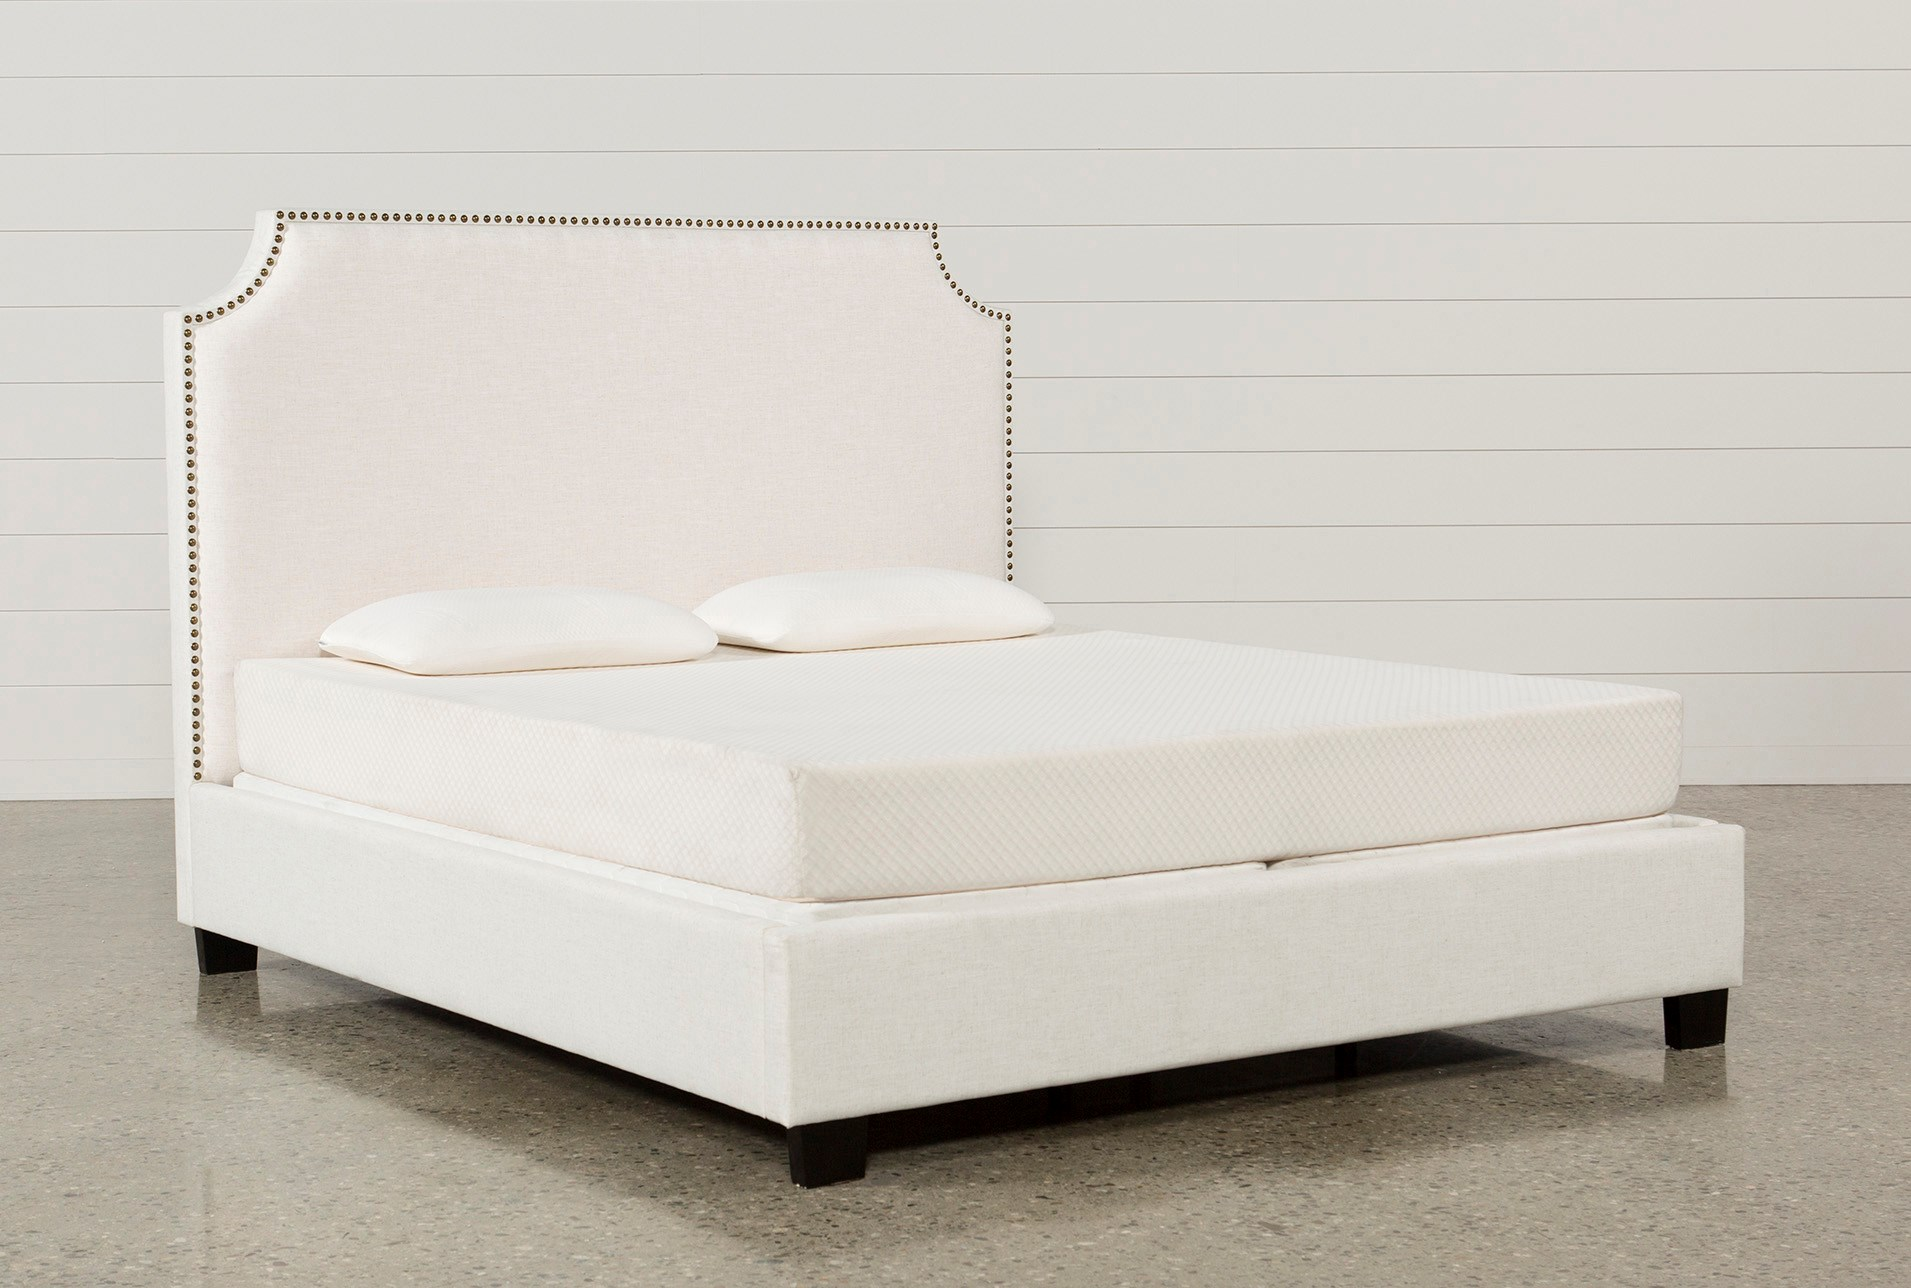 Sophia Eastern King Upholstered Platform Bed Qty 1 Has Been Successfully Added To Your Cart